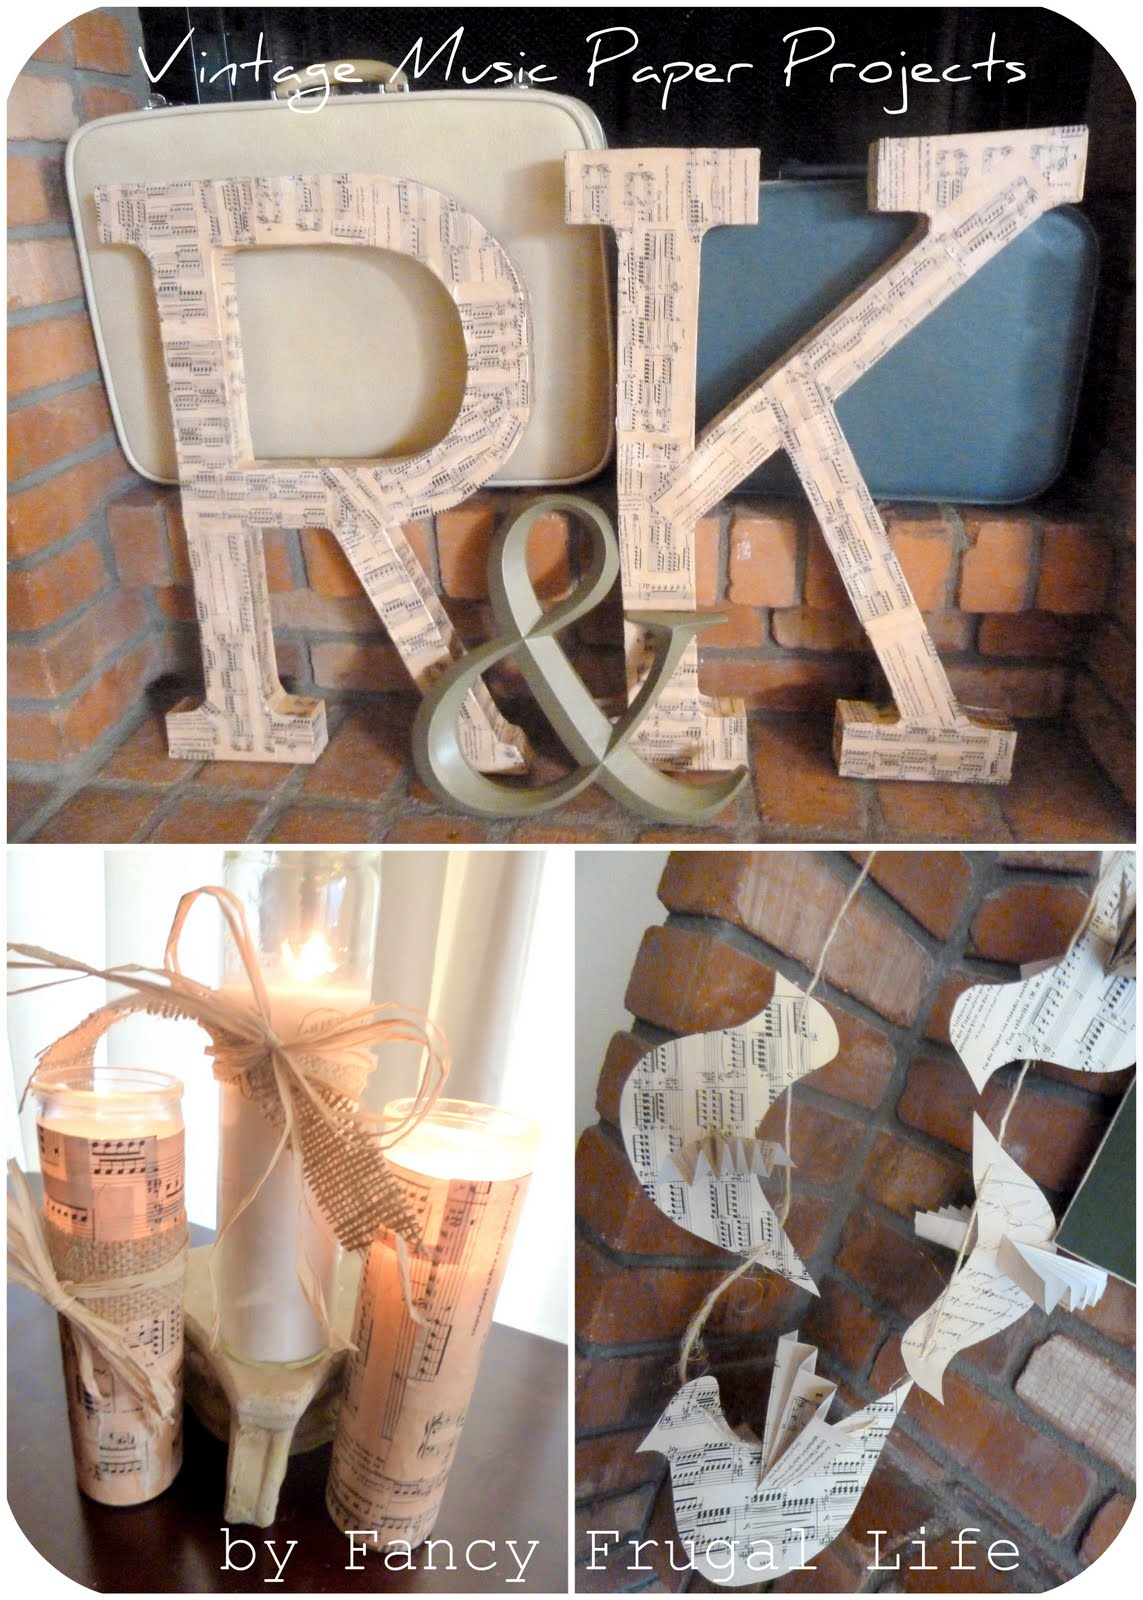 3 vintage music paper wedding projects |